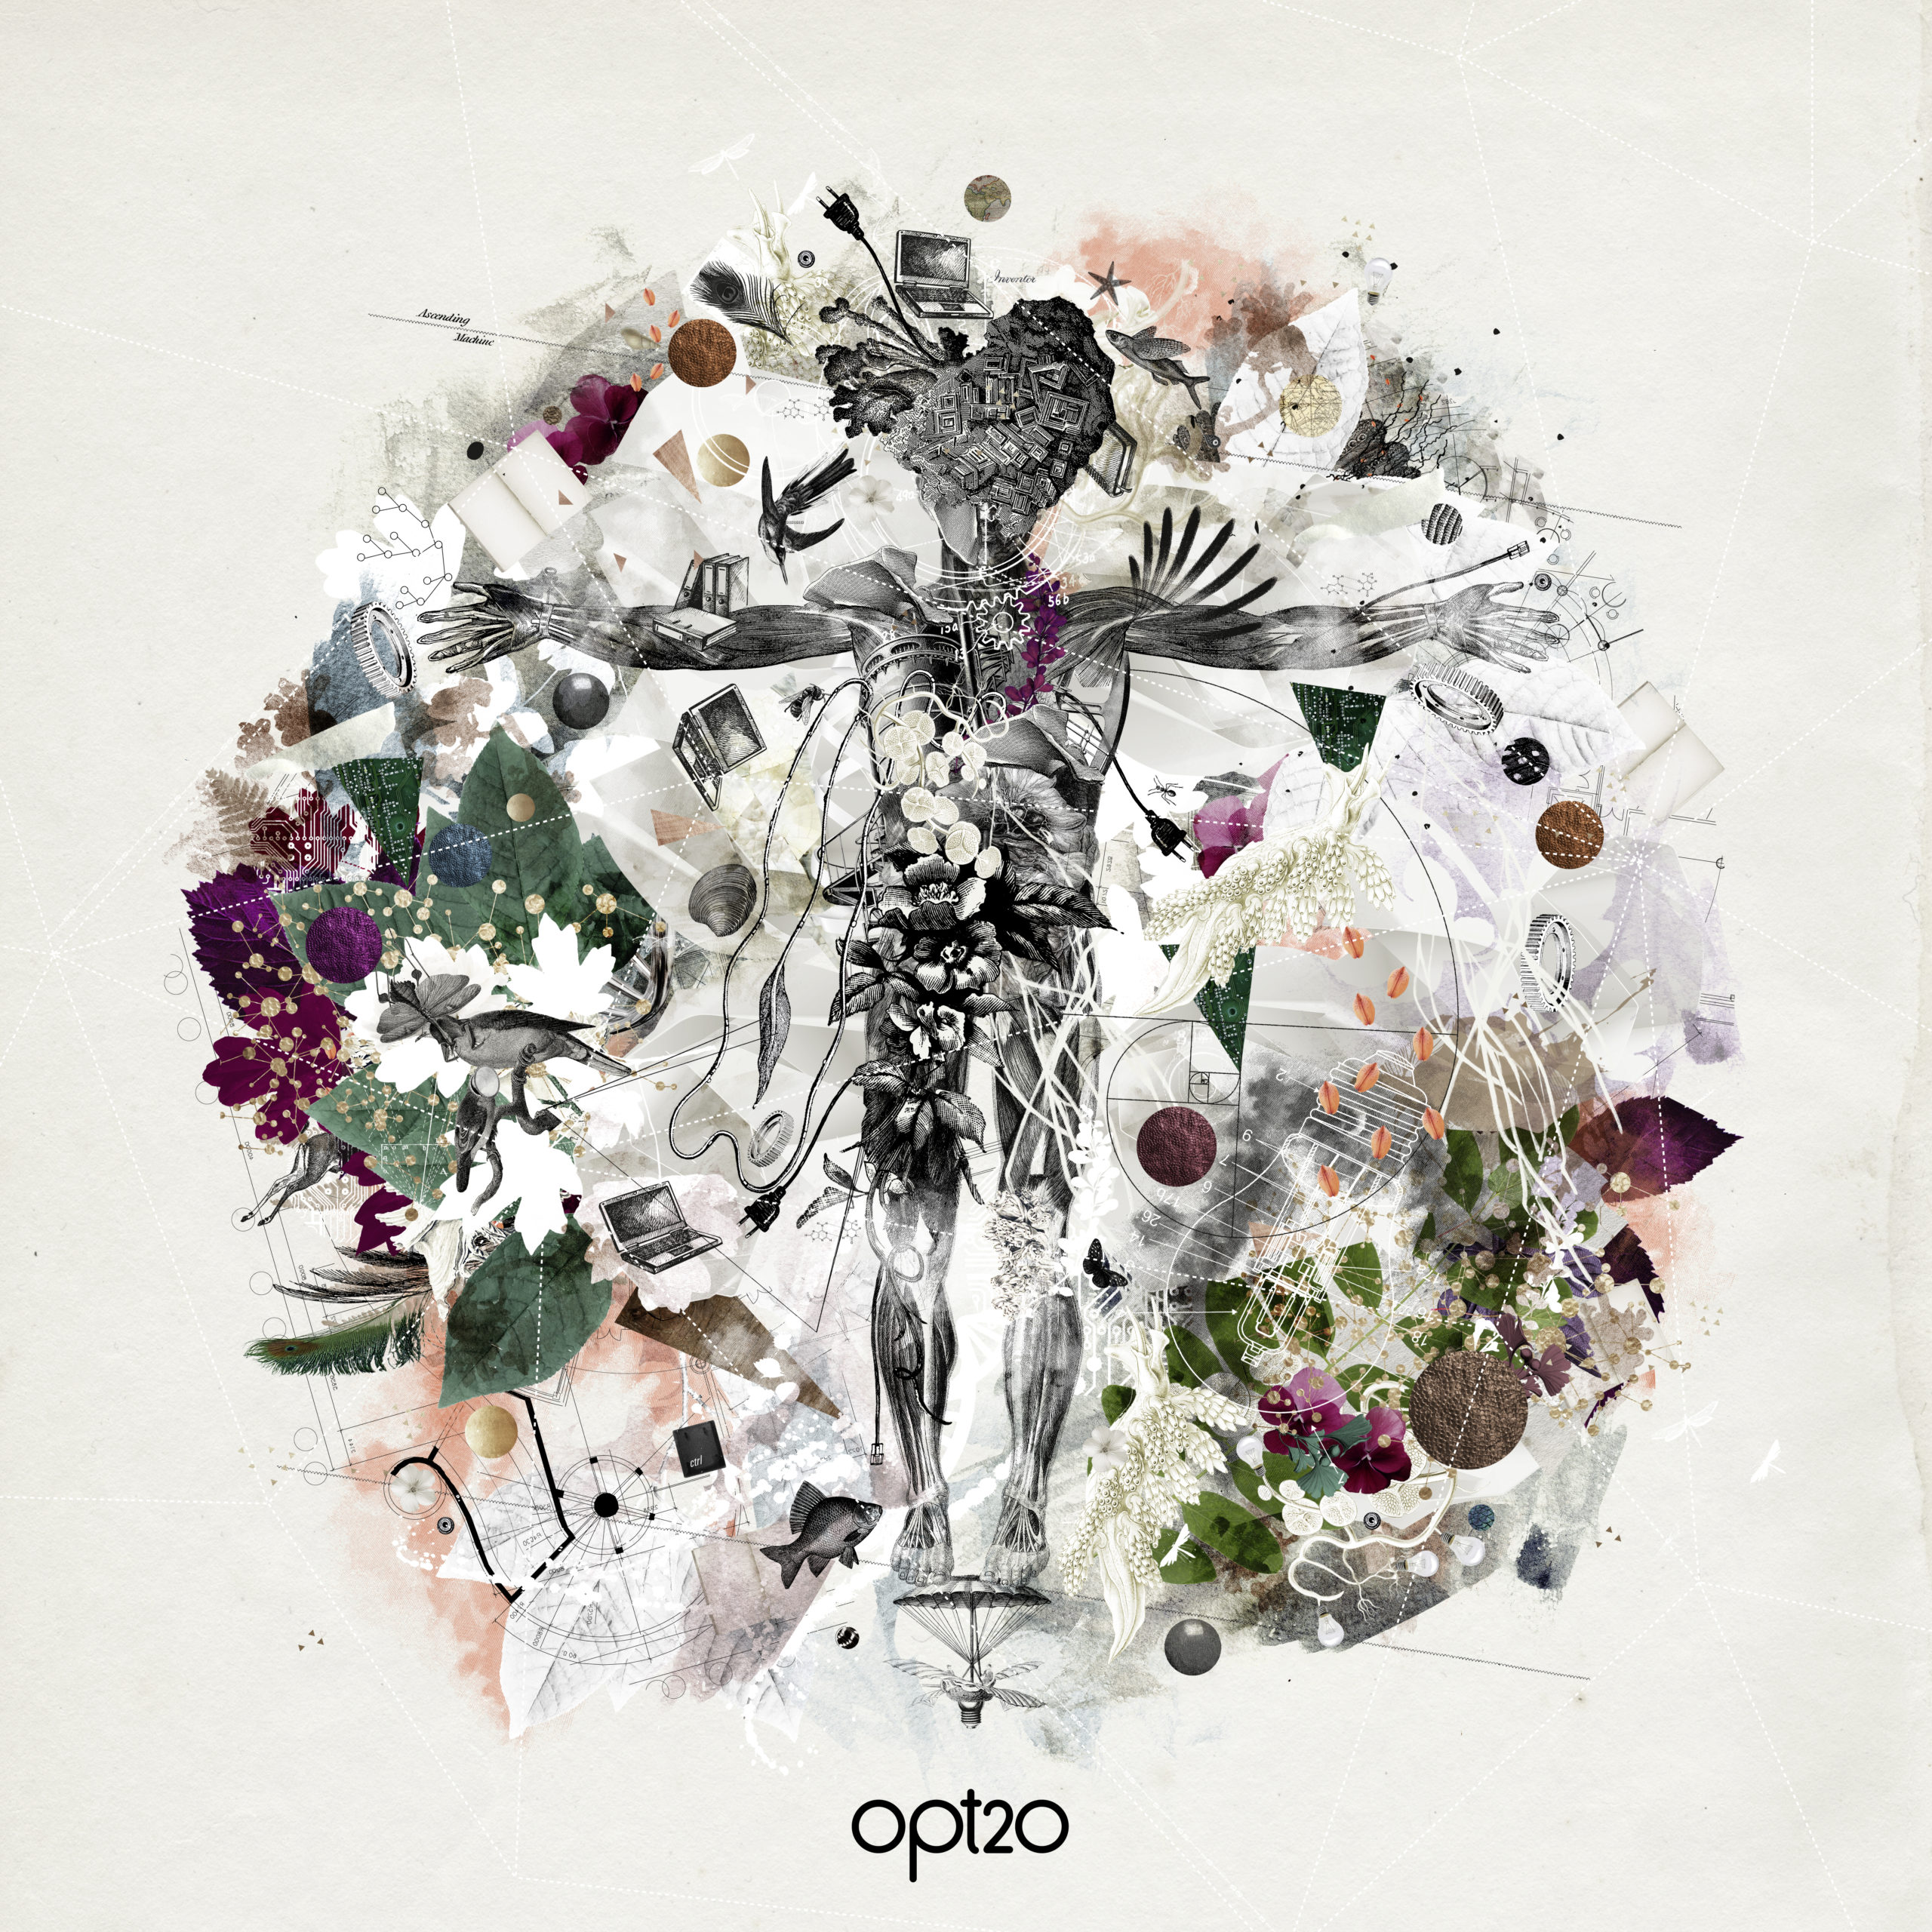 opt2o artwork